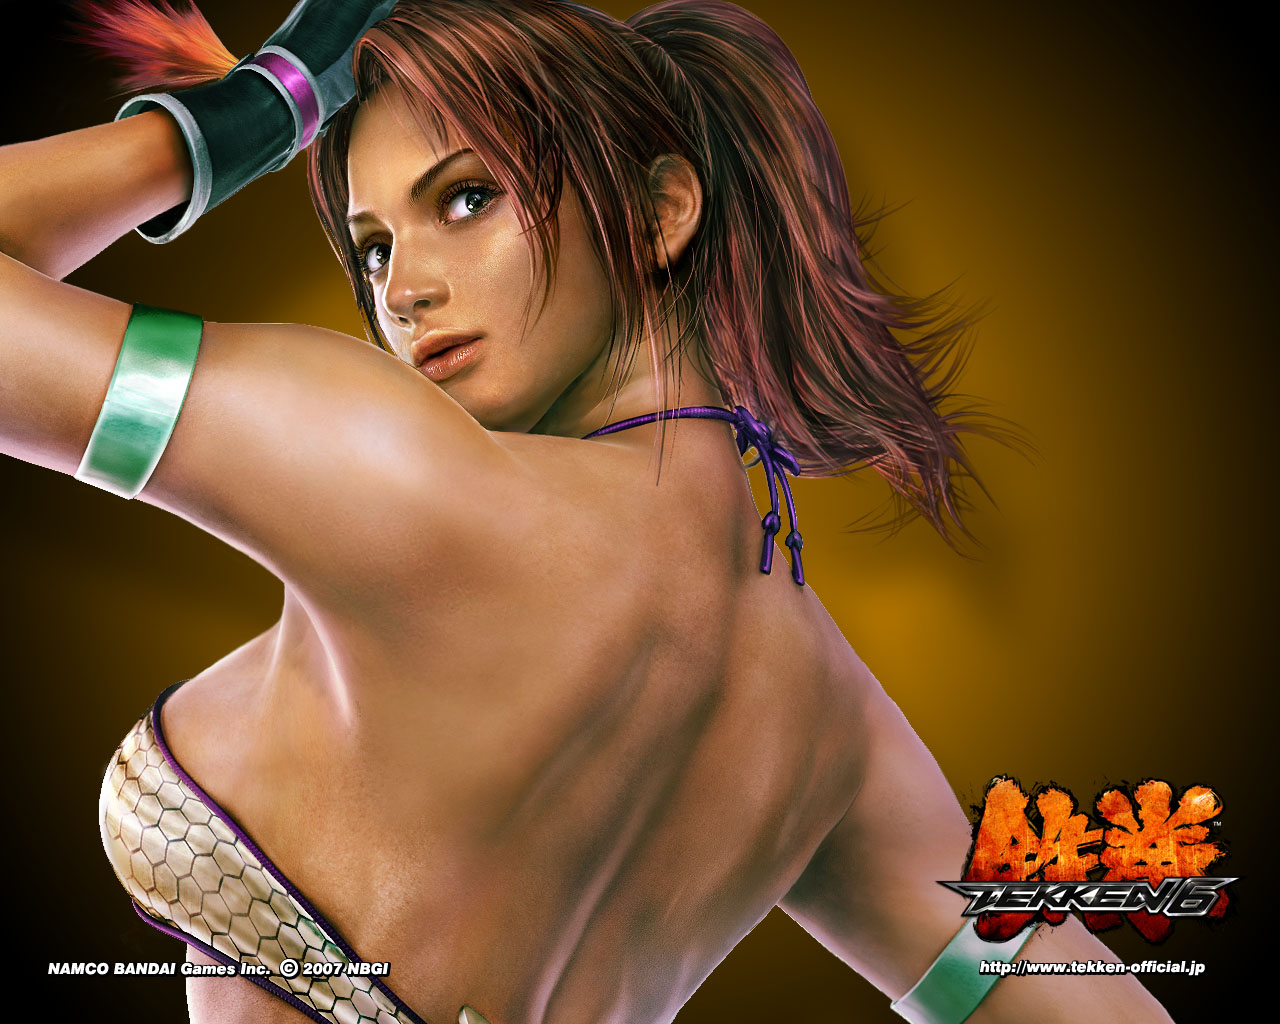 http://4.bp.blogspot.com/-h_ScZuEAliY/T-had2OgEnI/AAAAAAAAAXY/rKC1KCJHvKk/s1600/Tekken%206%20HD%20Wallpapers%20(10).jpg